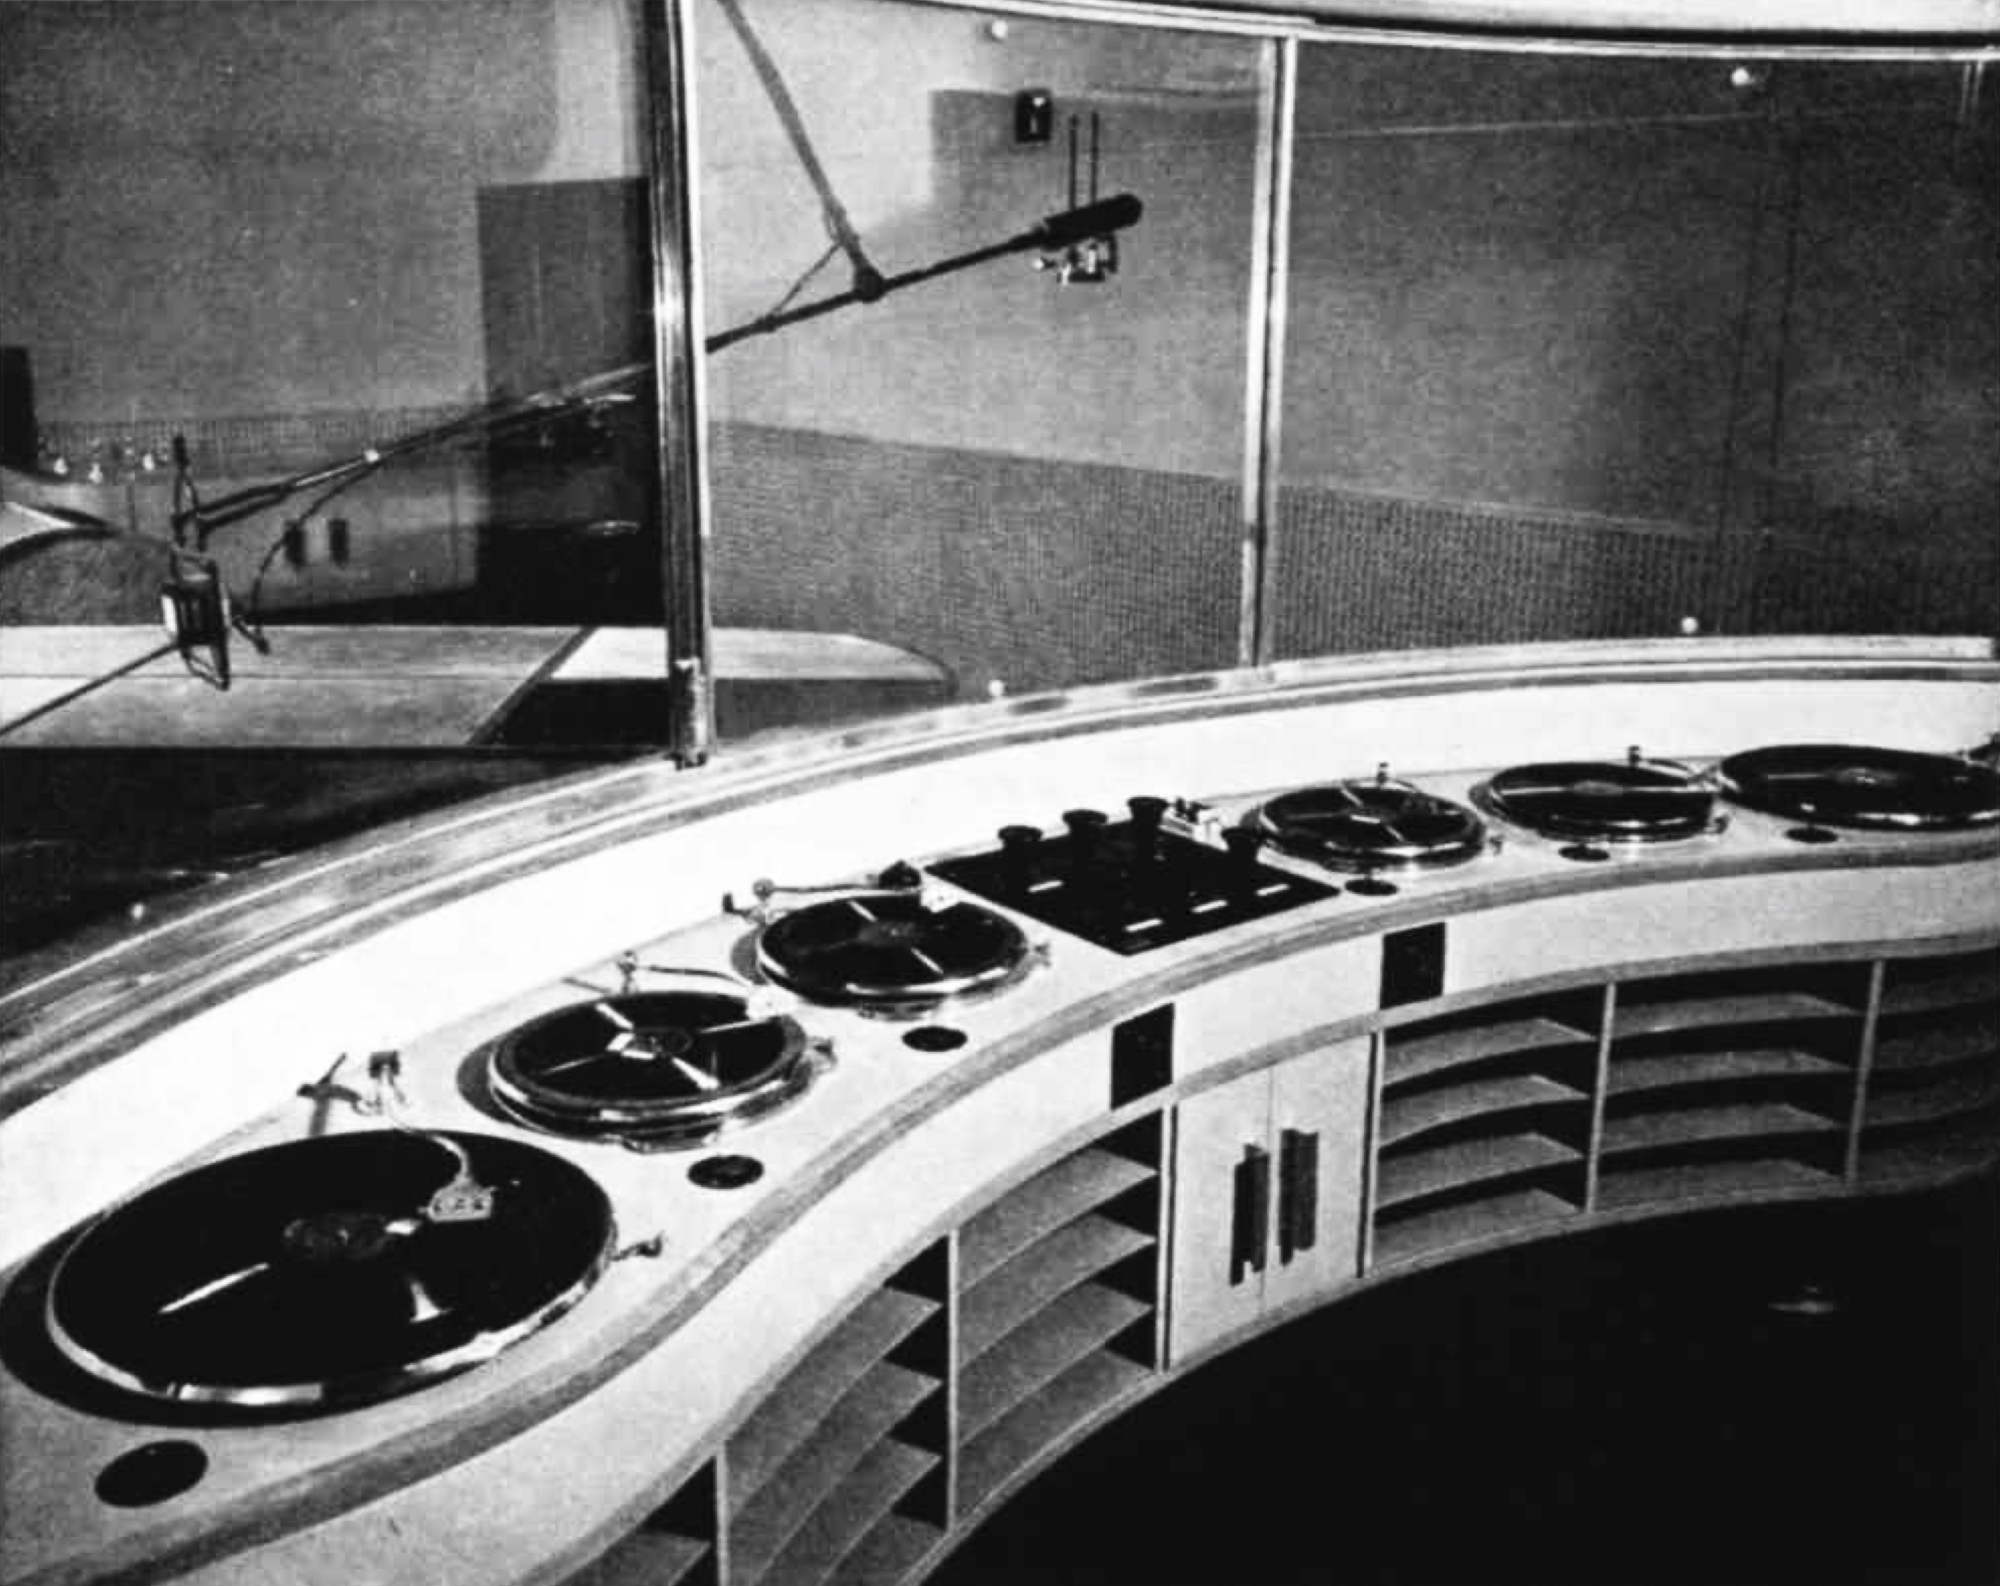 A curved desk with 6 turntables